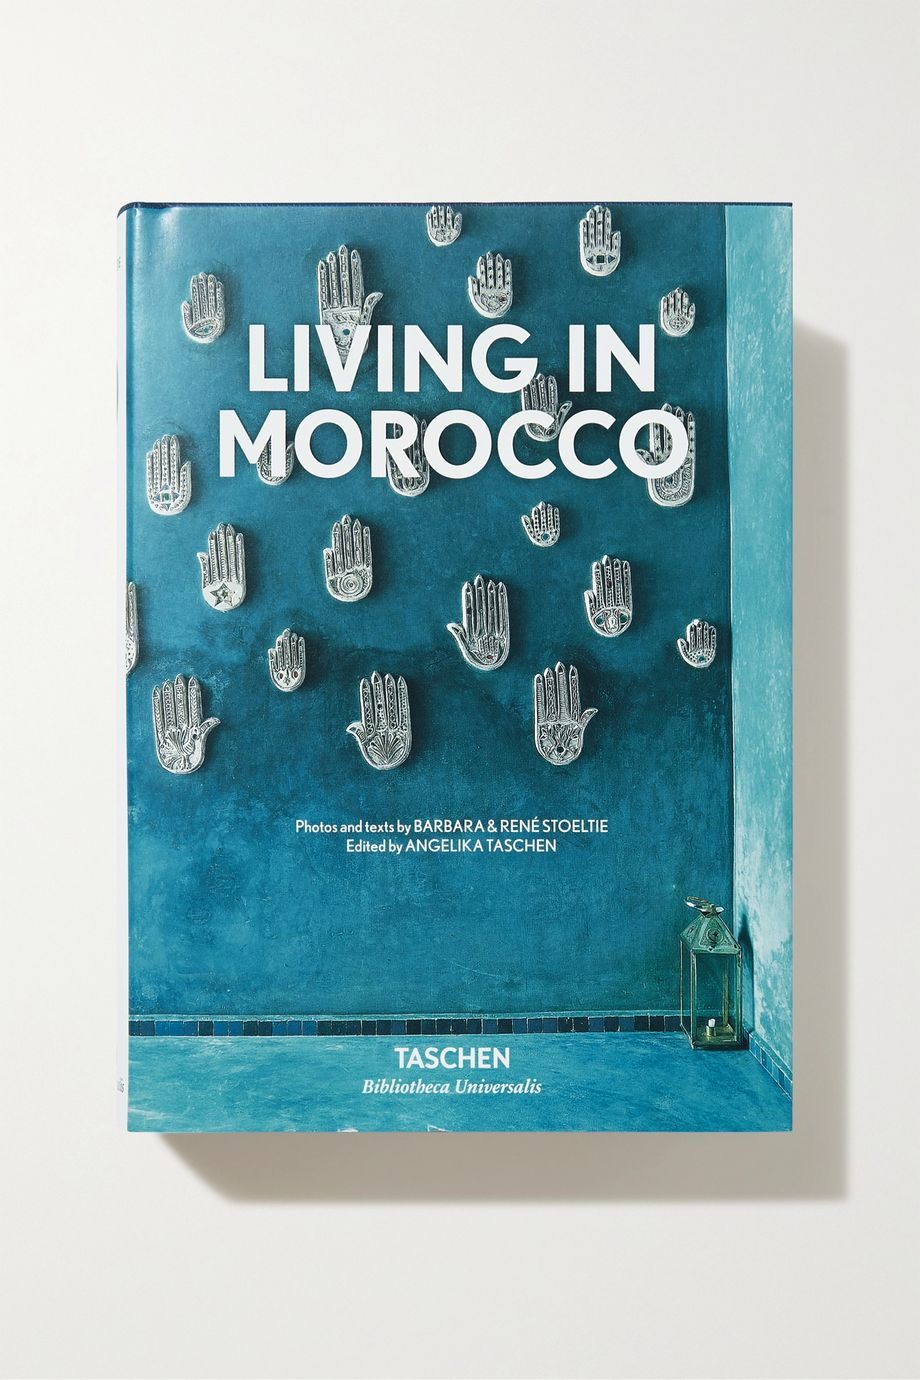 Taschen Living in Morocco by Barbara and René Stoeltie hardcover book